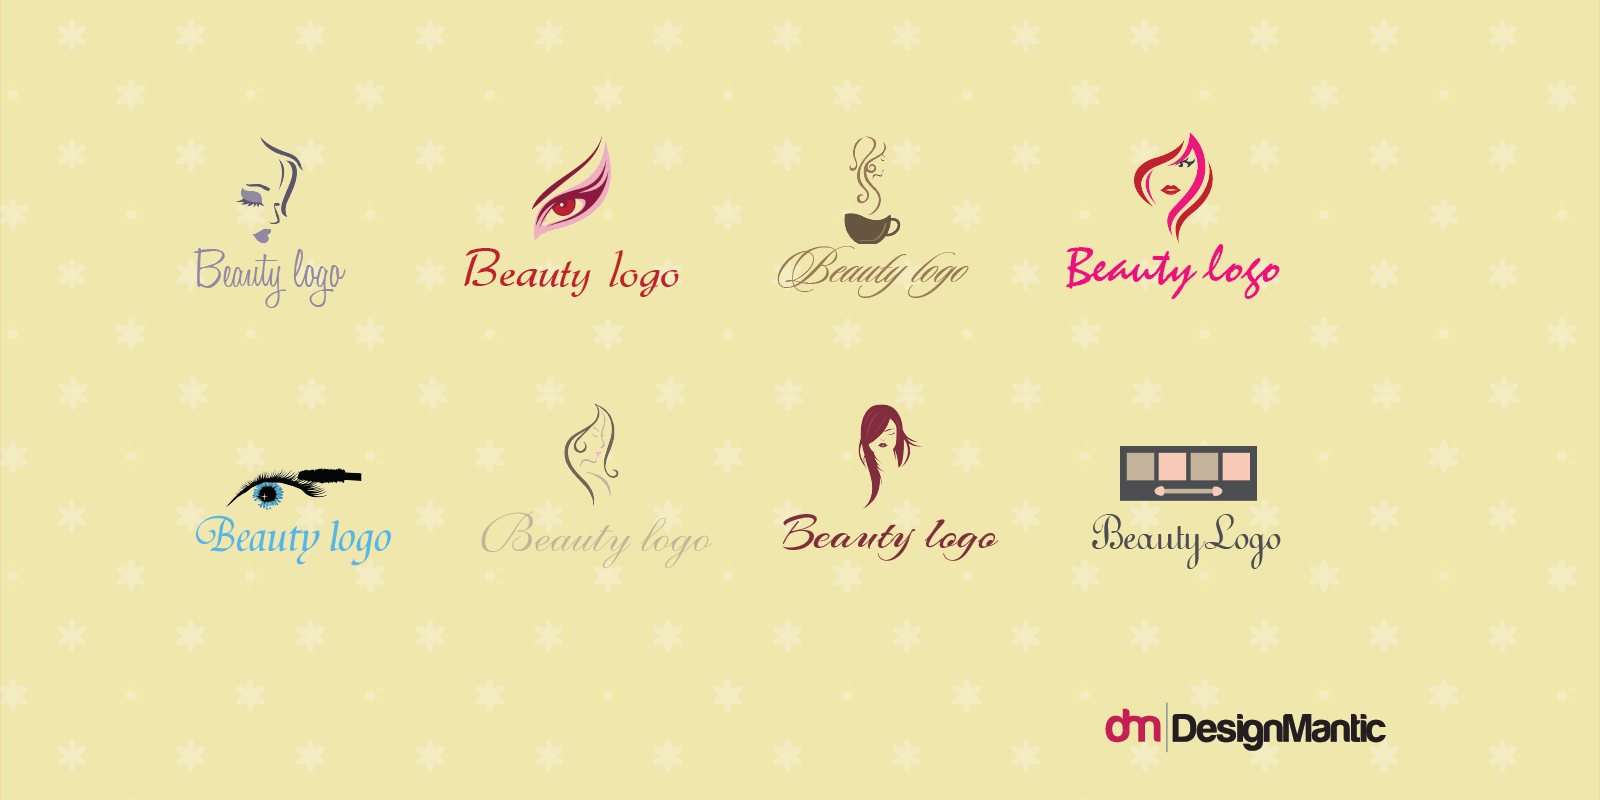 DesignMantic Script Logos For Beauty